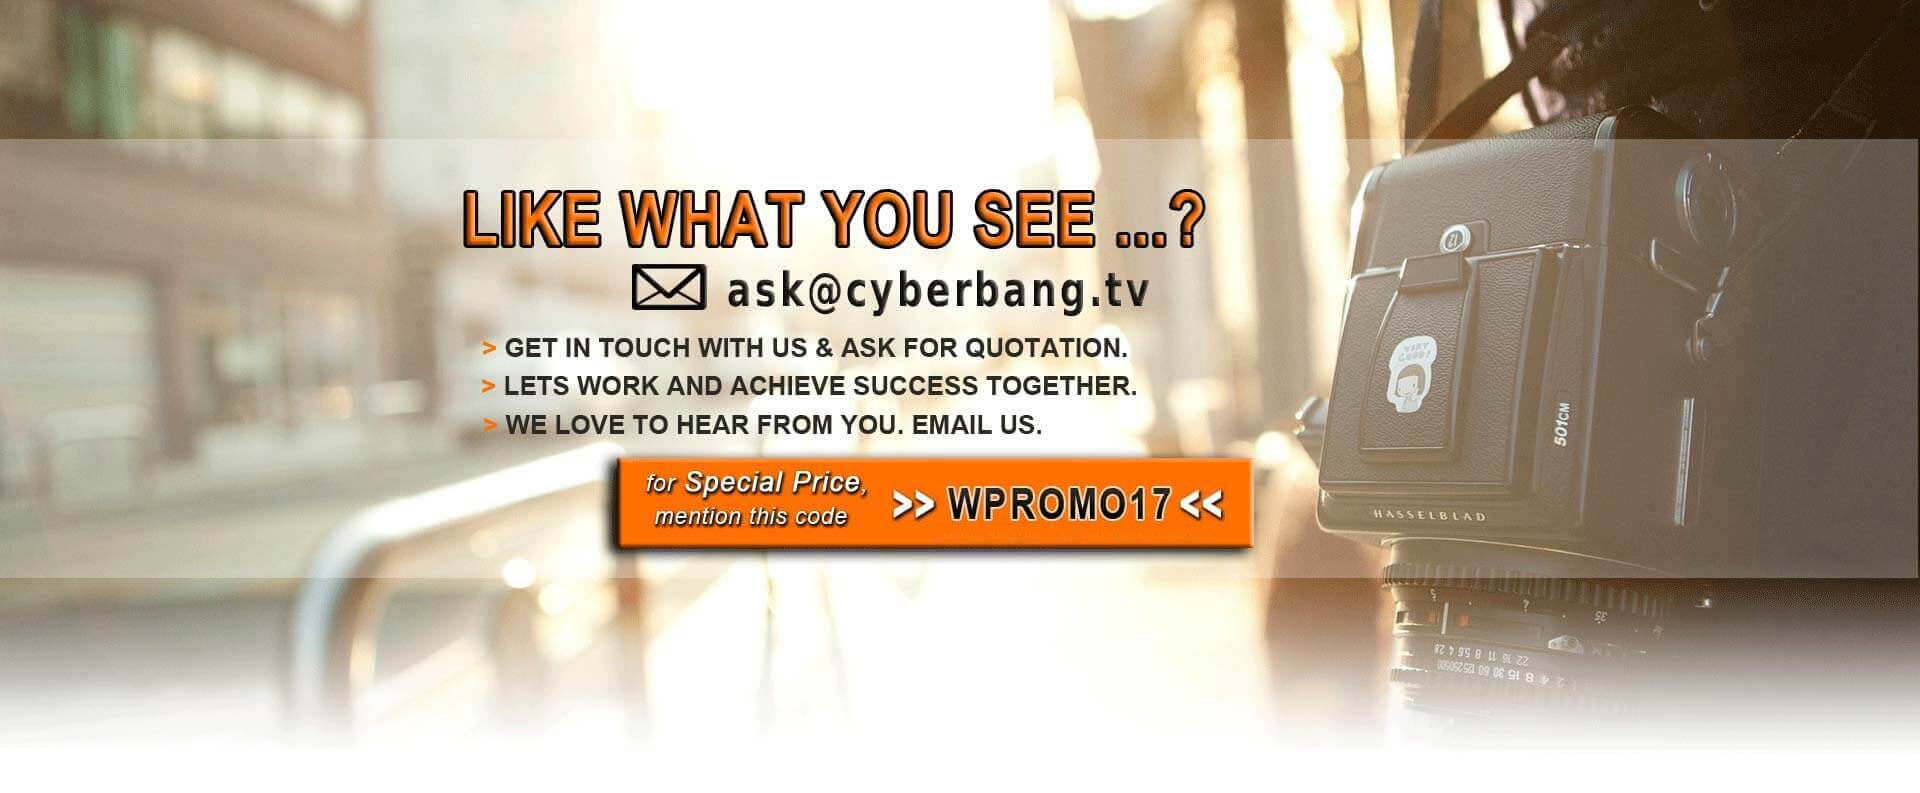 ask-for-quotation-cyberbang